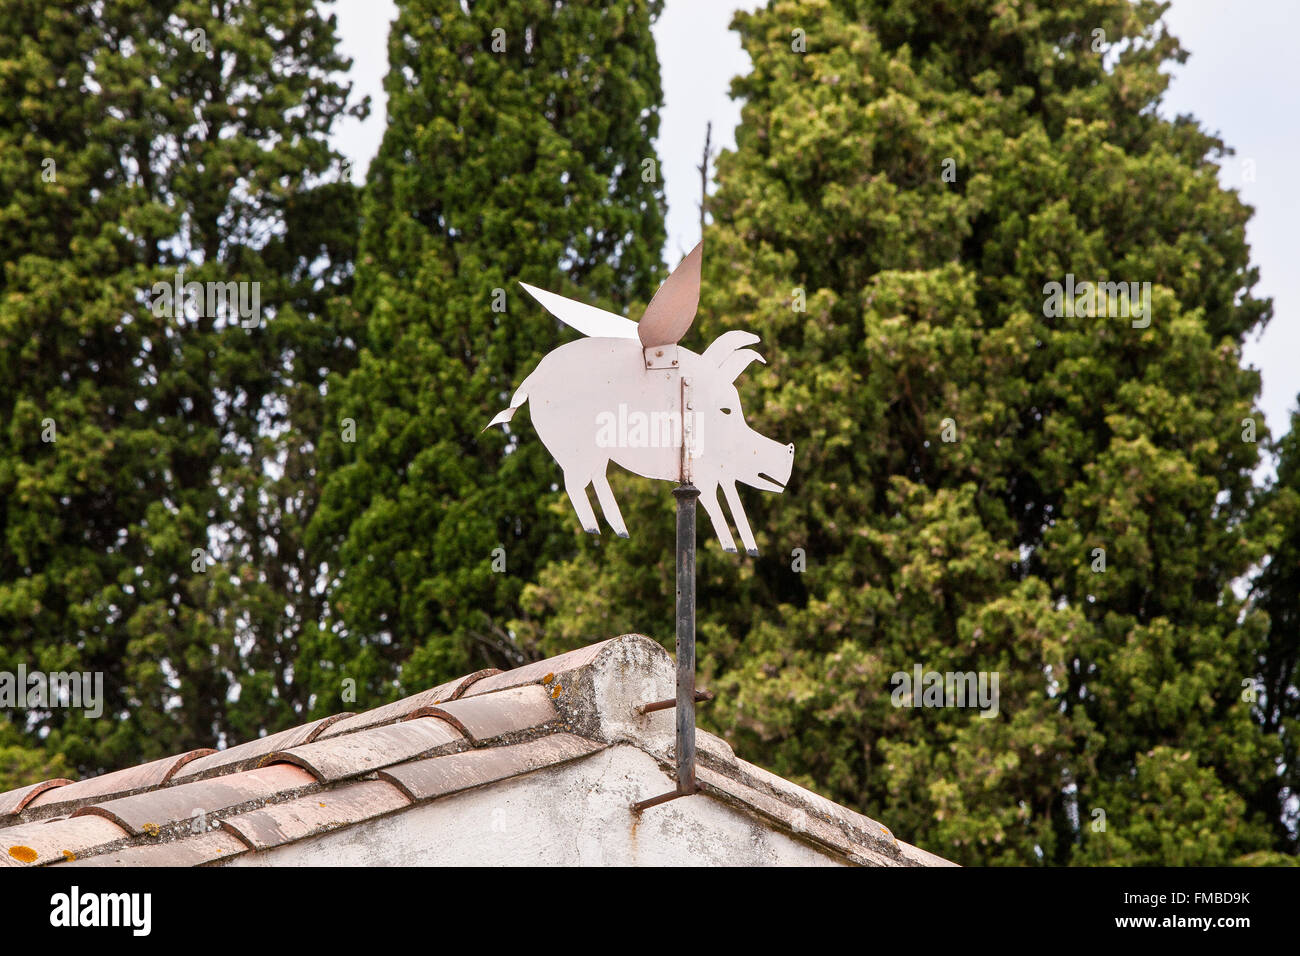 Flying pig wind weather vane at artists run Aiguille lock, Canal Du Midi,cycling,cruise,boats,Aude,Carcassonne,South,France. - Stock Image